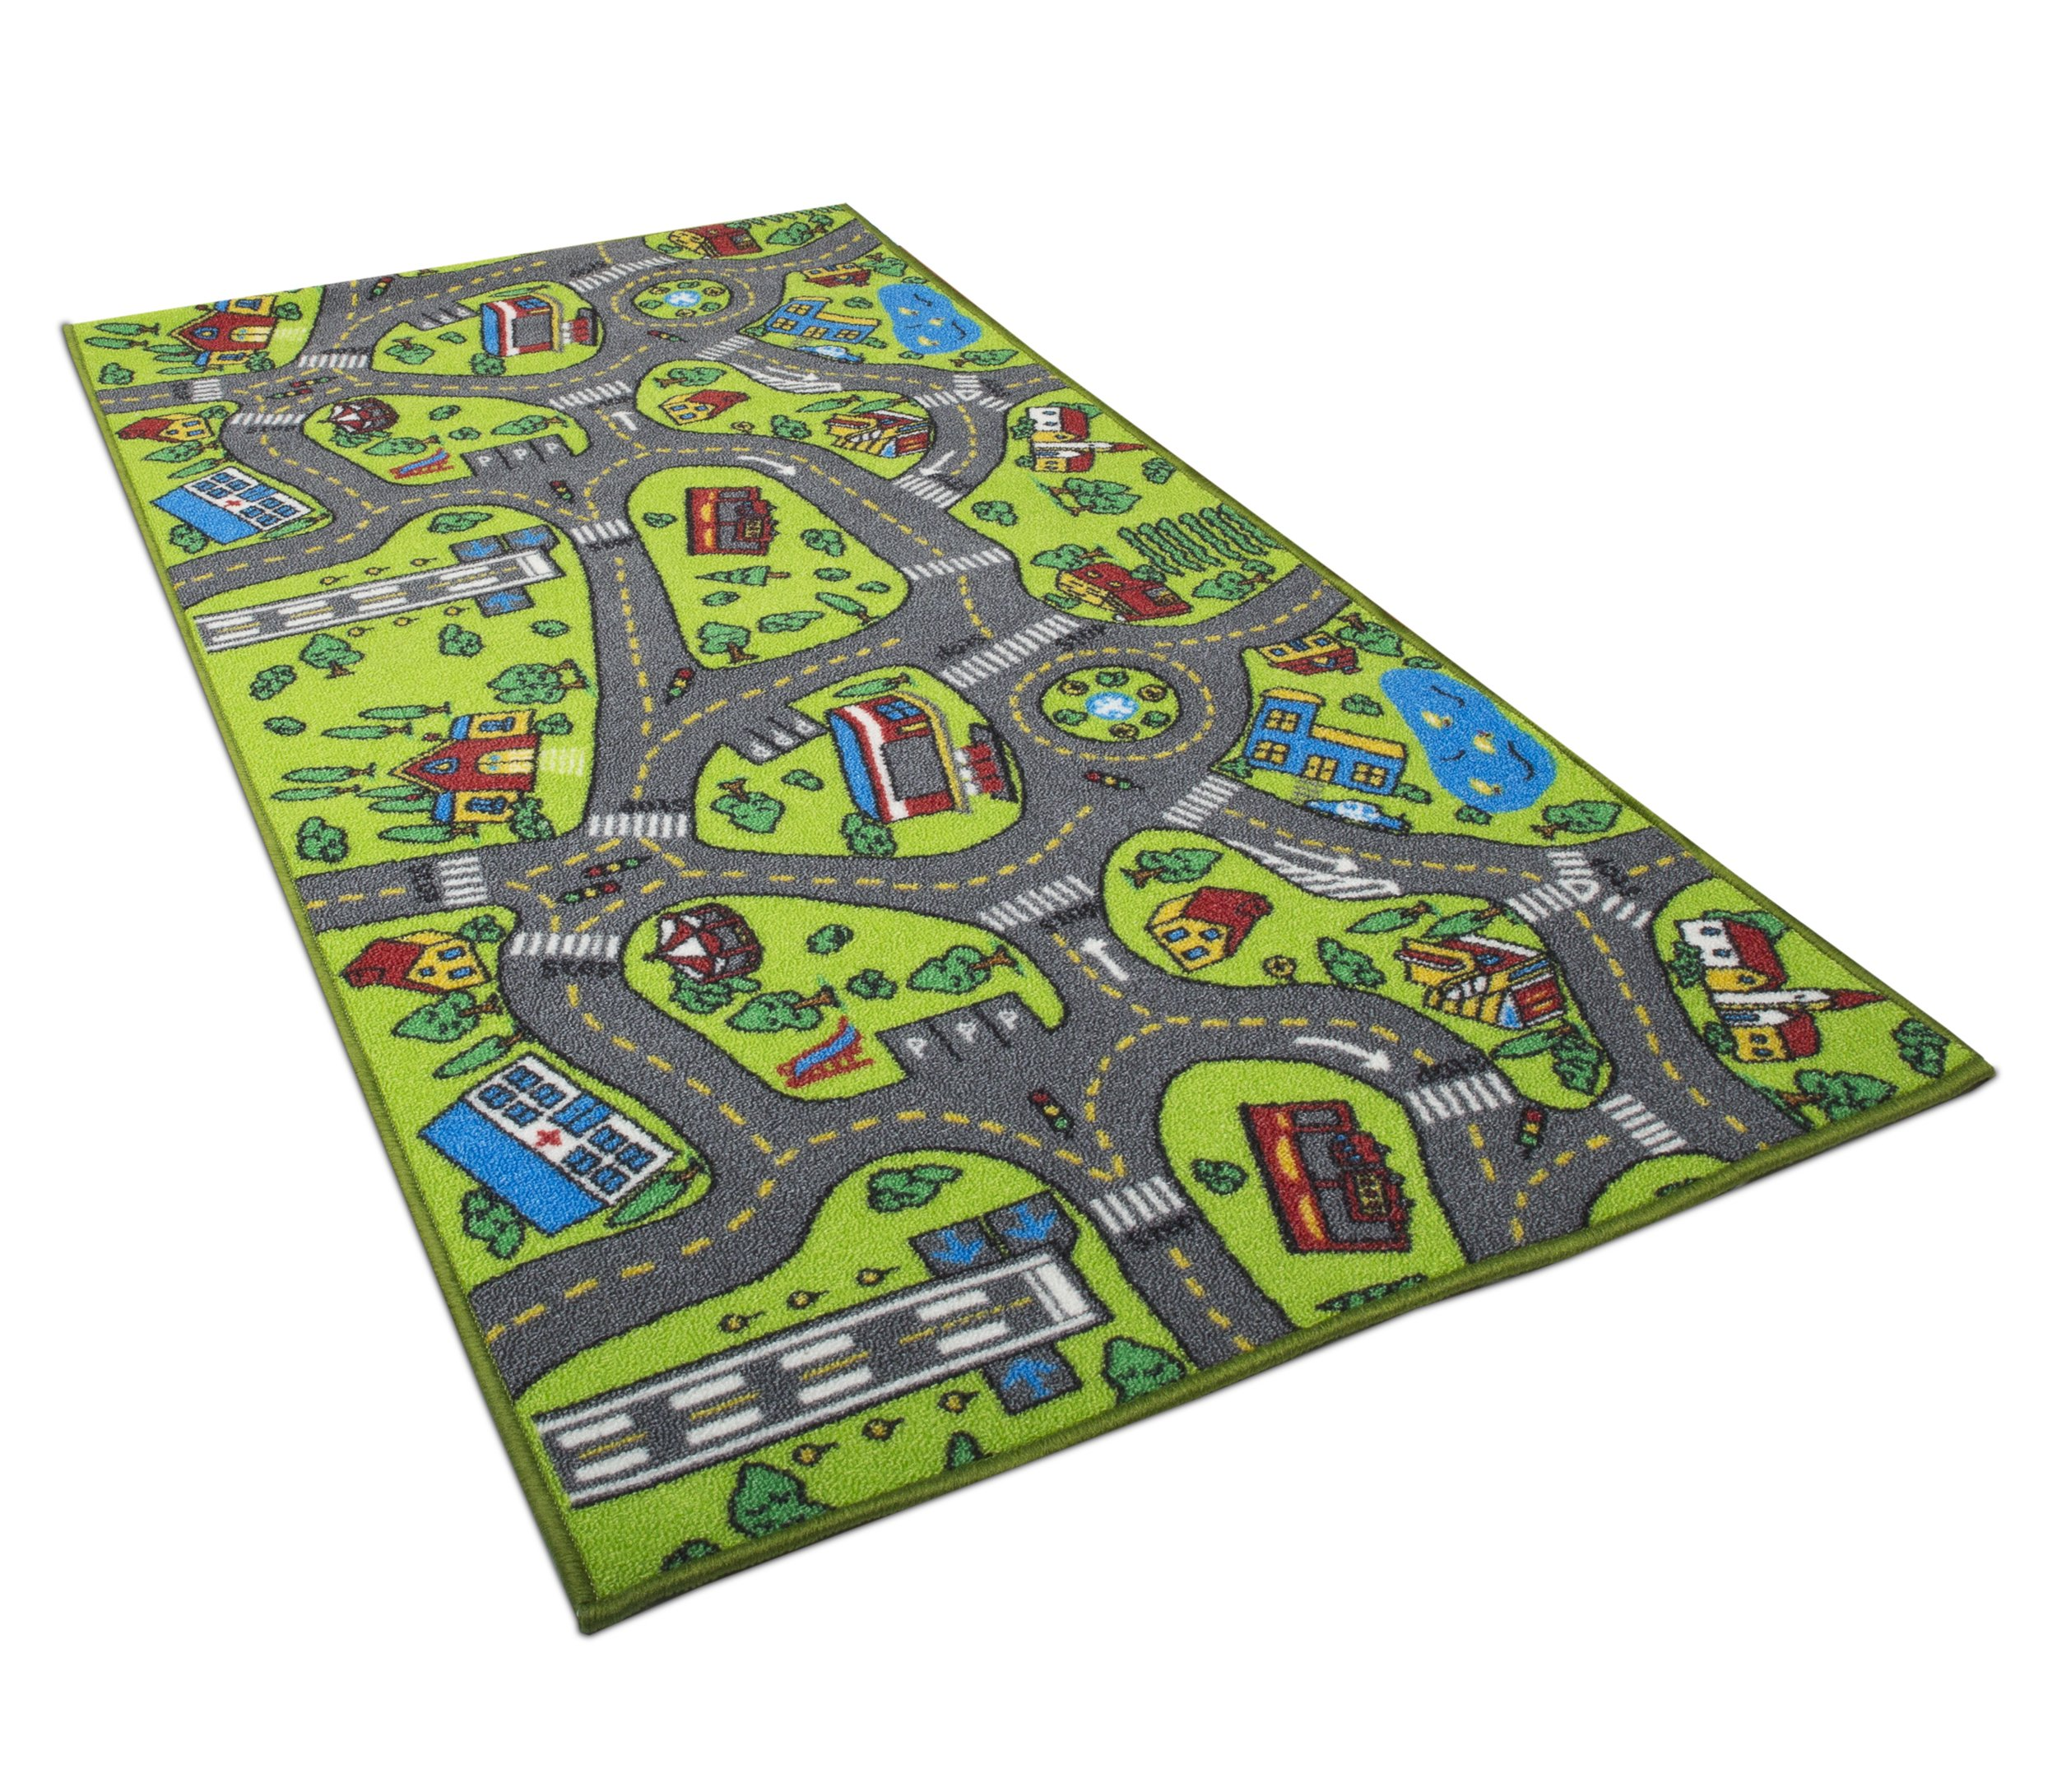 Kids Carpet Playmat Rug City Life Great For Playing With Cars and Toys - Play, Learn and Have Fun Safely - Kids Baby, Children Educational Road Traffic Play Mat, For Bedroom Play Room Game Safe Area by Angels